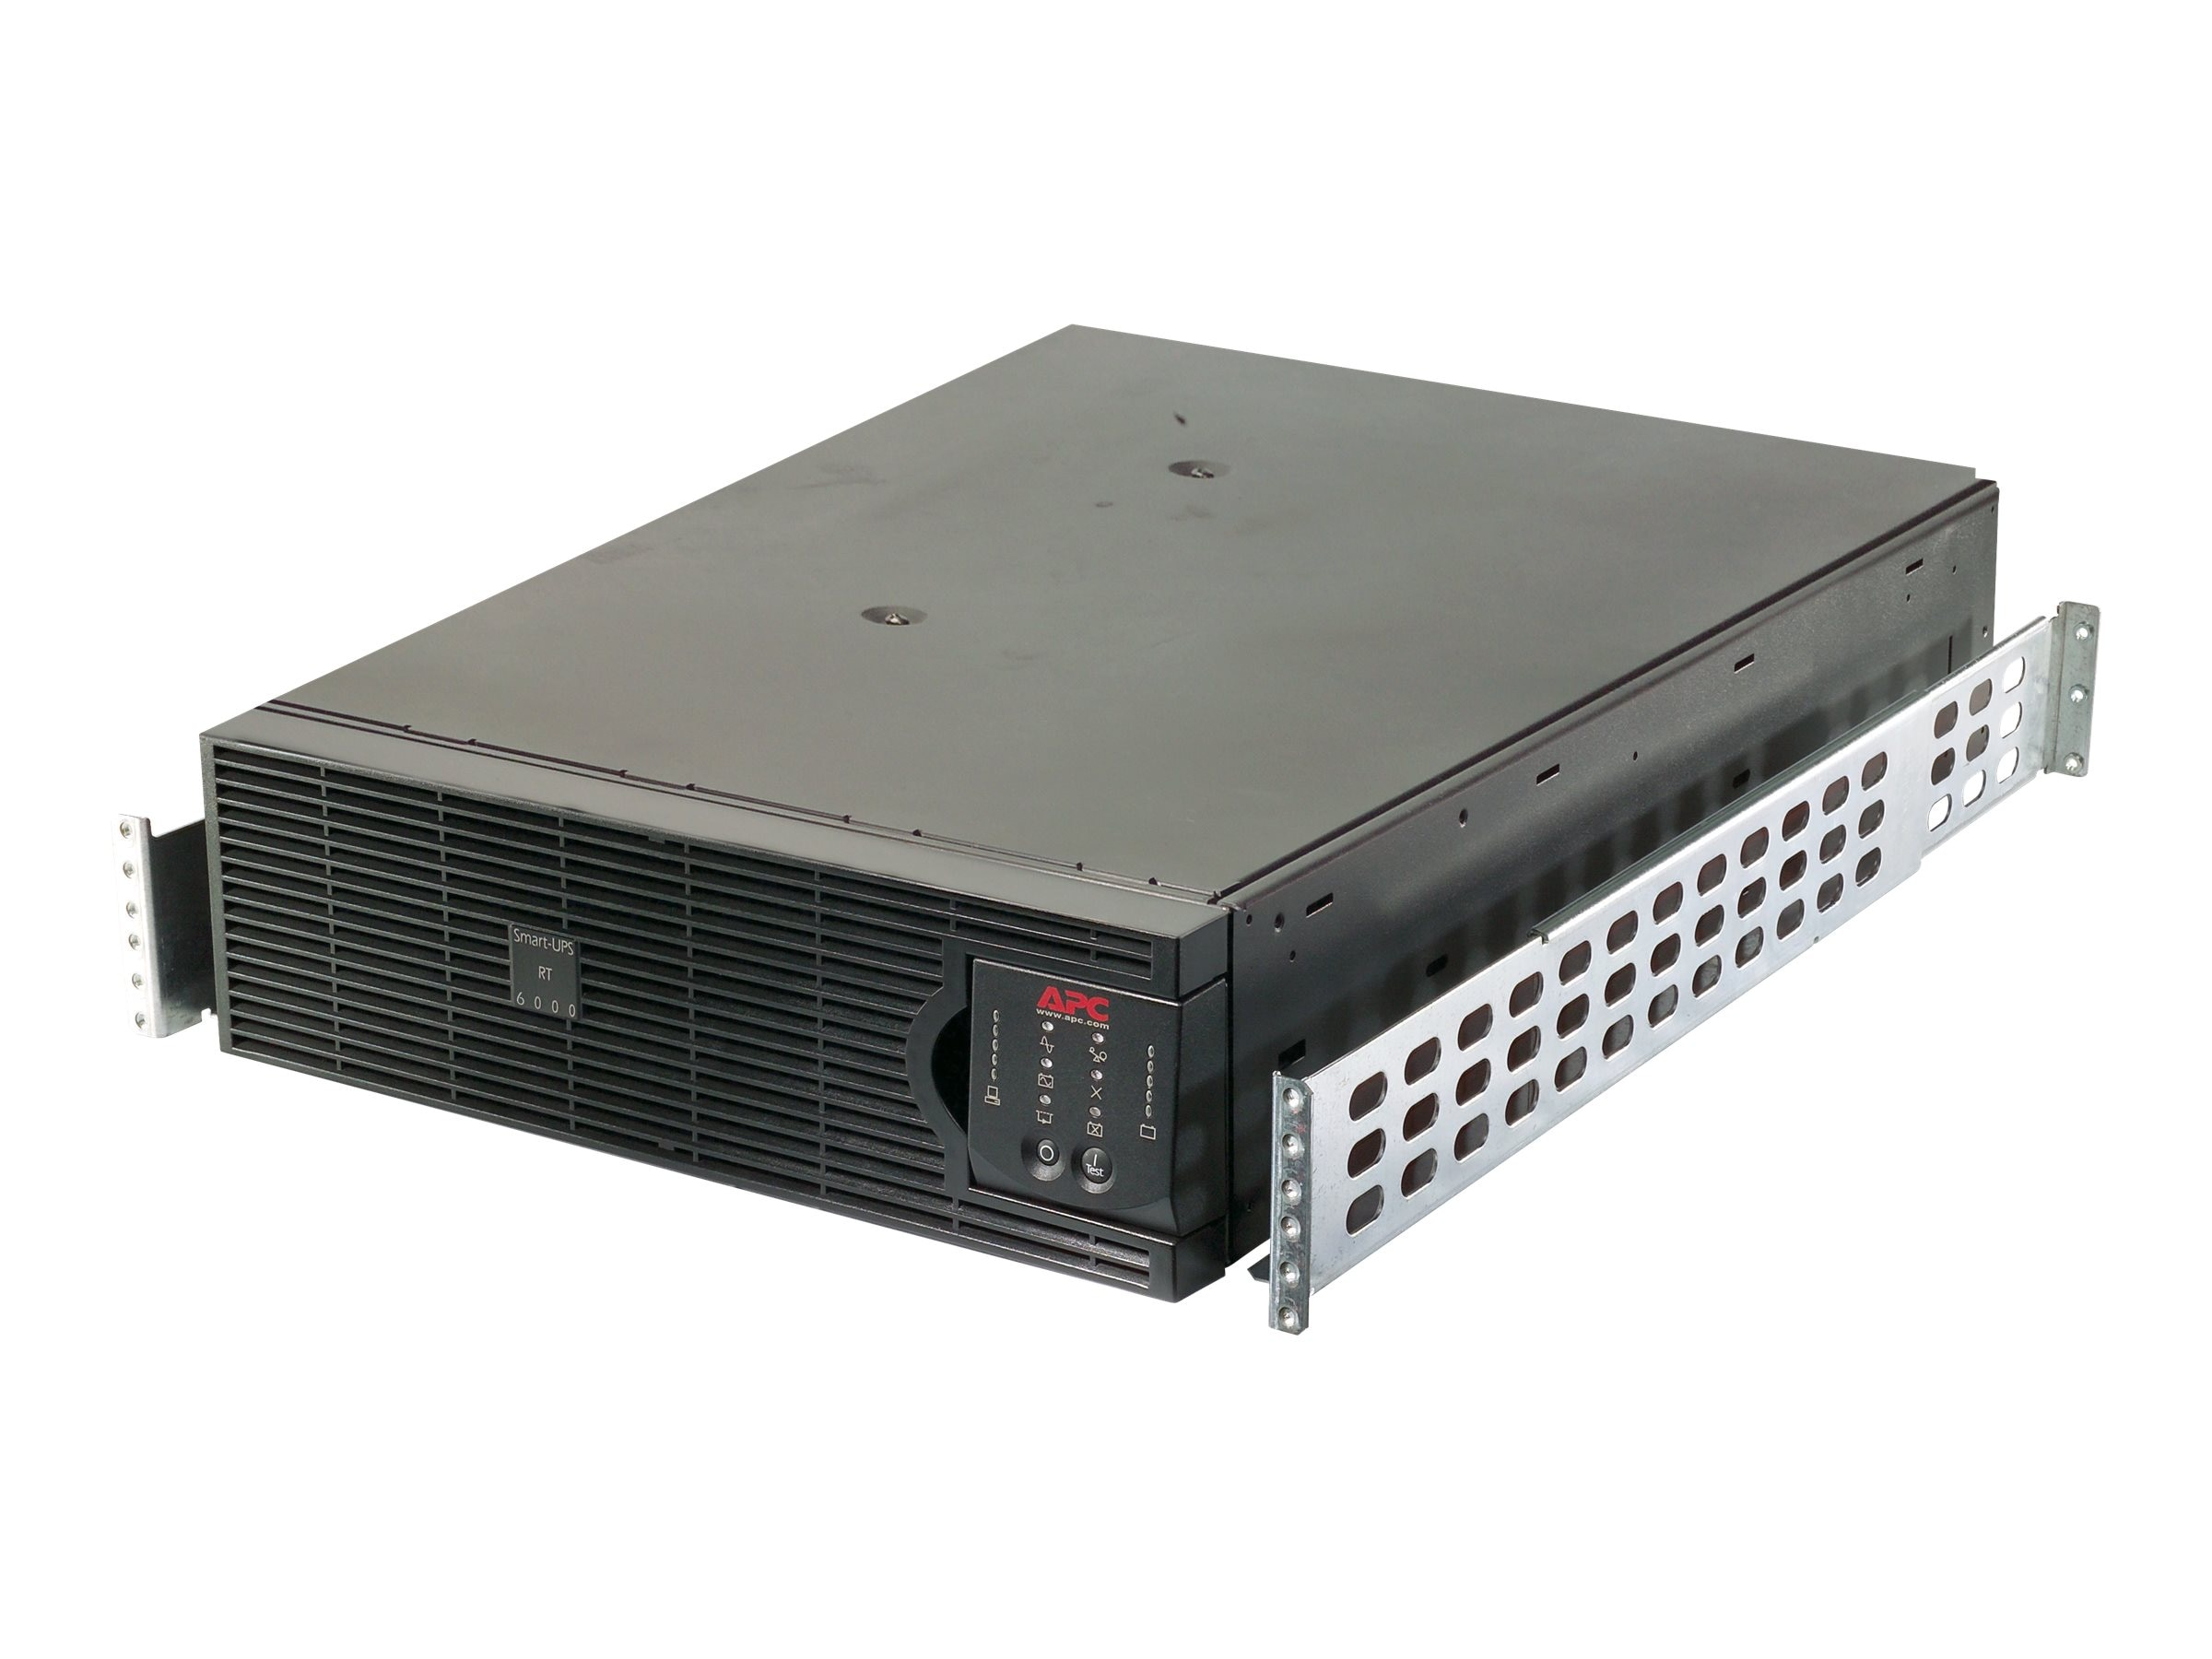 APC Smart-UPS RT 3000VA 2100W 120V L5-30P Input (6) 5-15R (2) 5-20R Outlets Network Card, SURTA3000RMXL3U-NC, 30899256, Battery Backup/UPS